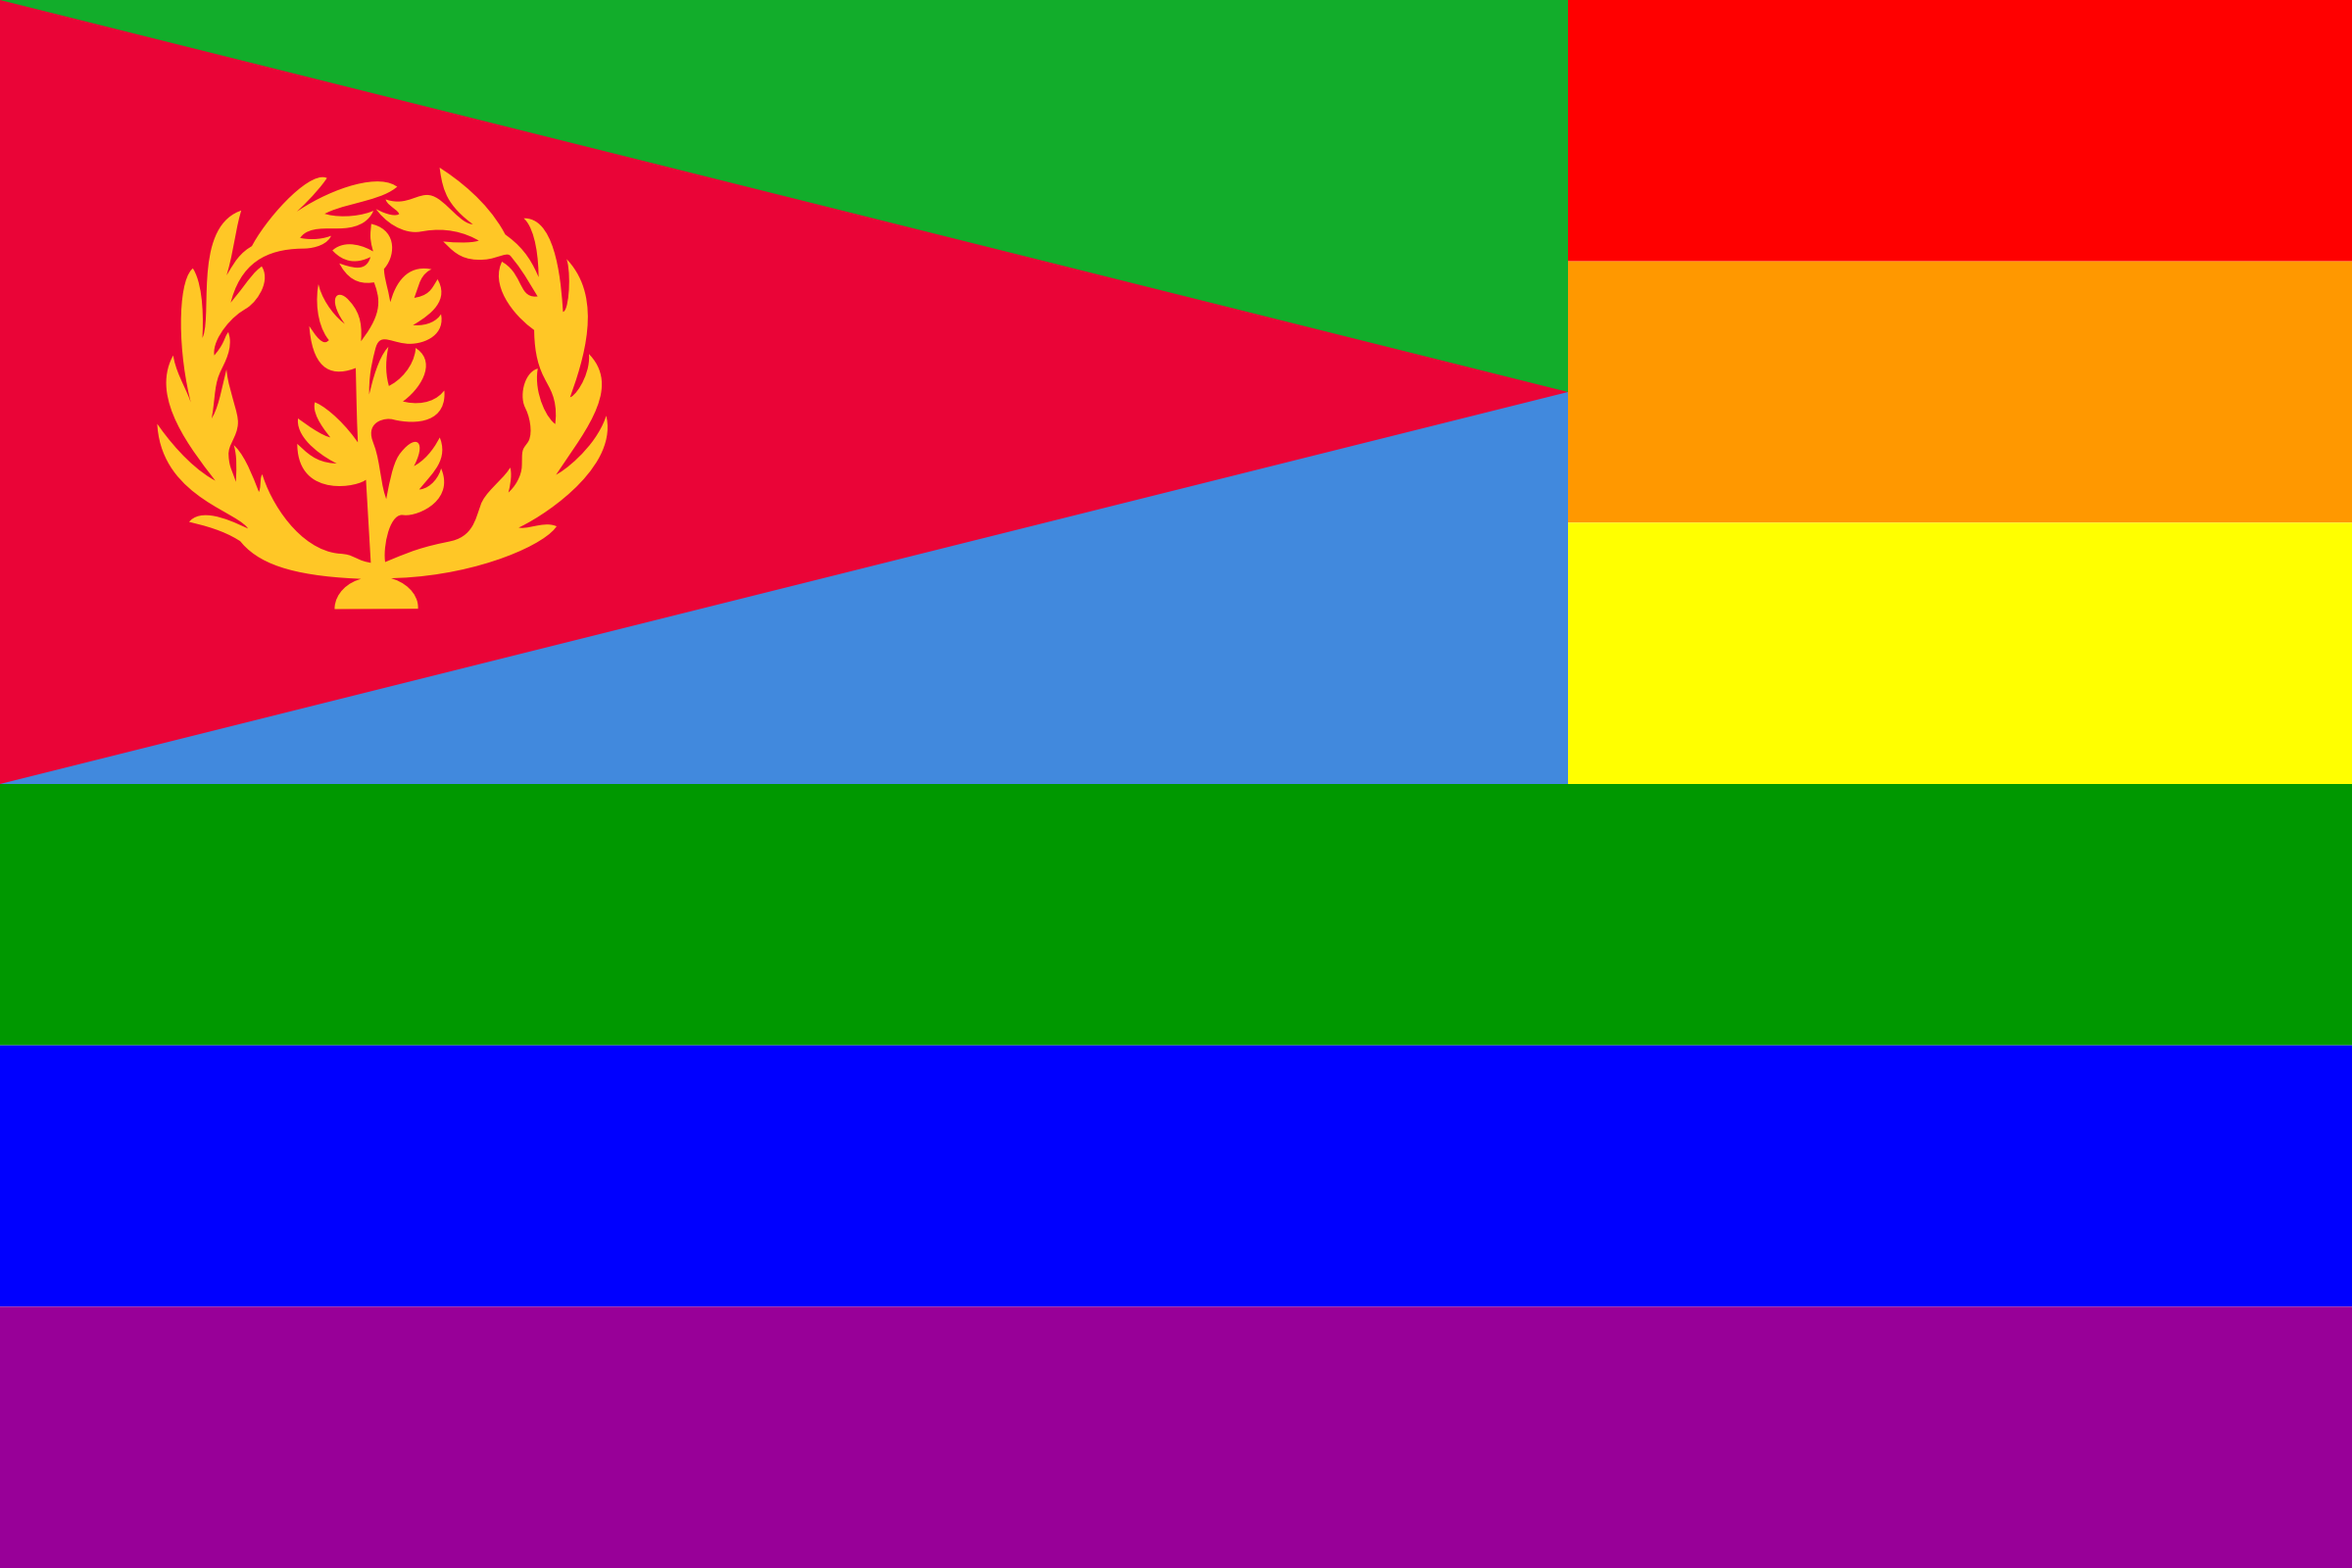 The Eritrea Rainbow Flag by AdamStanislav